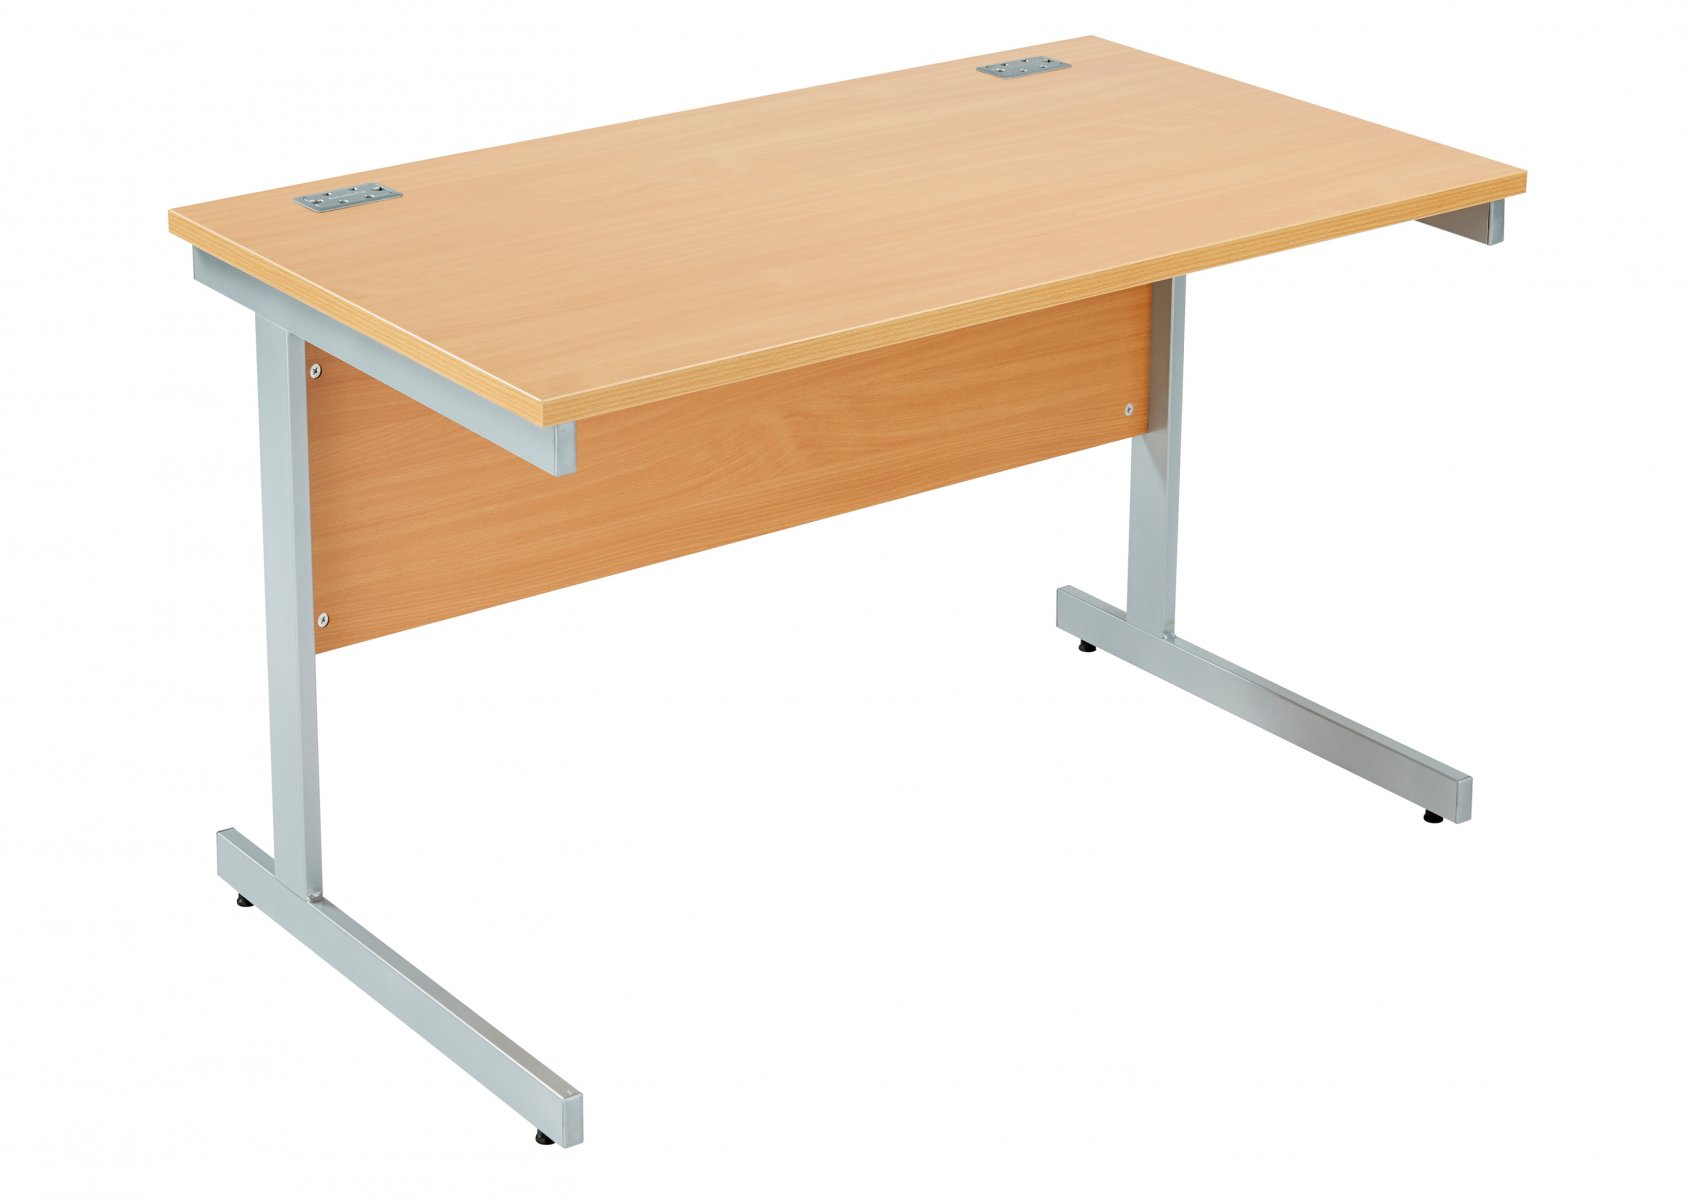 Fraction Plus Rectangular 120 Desk - Beech with Silver Frame